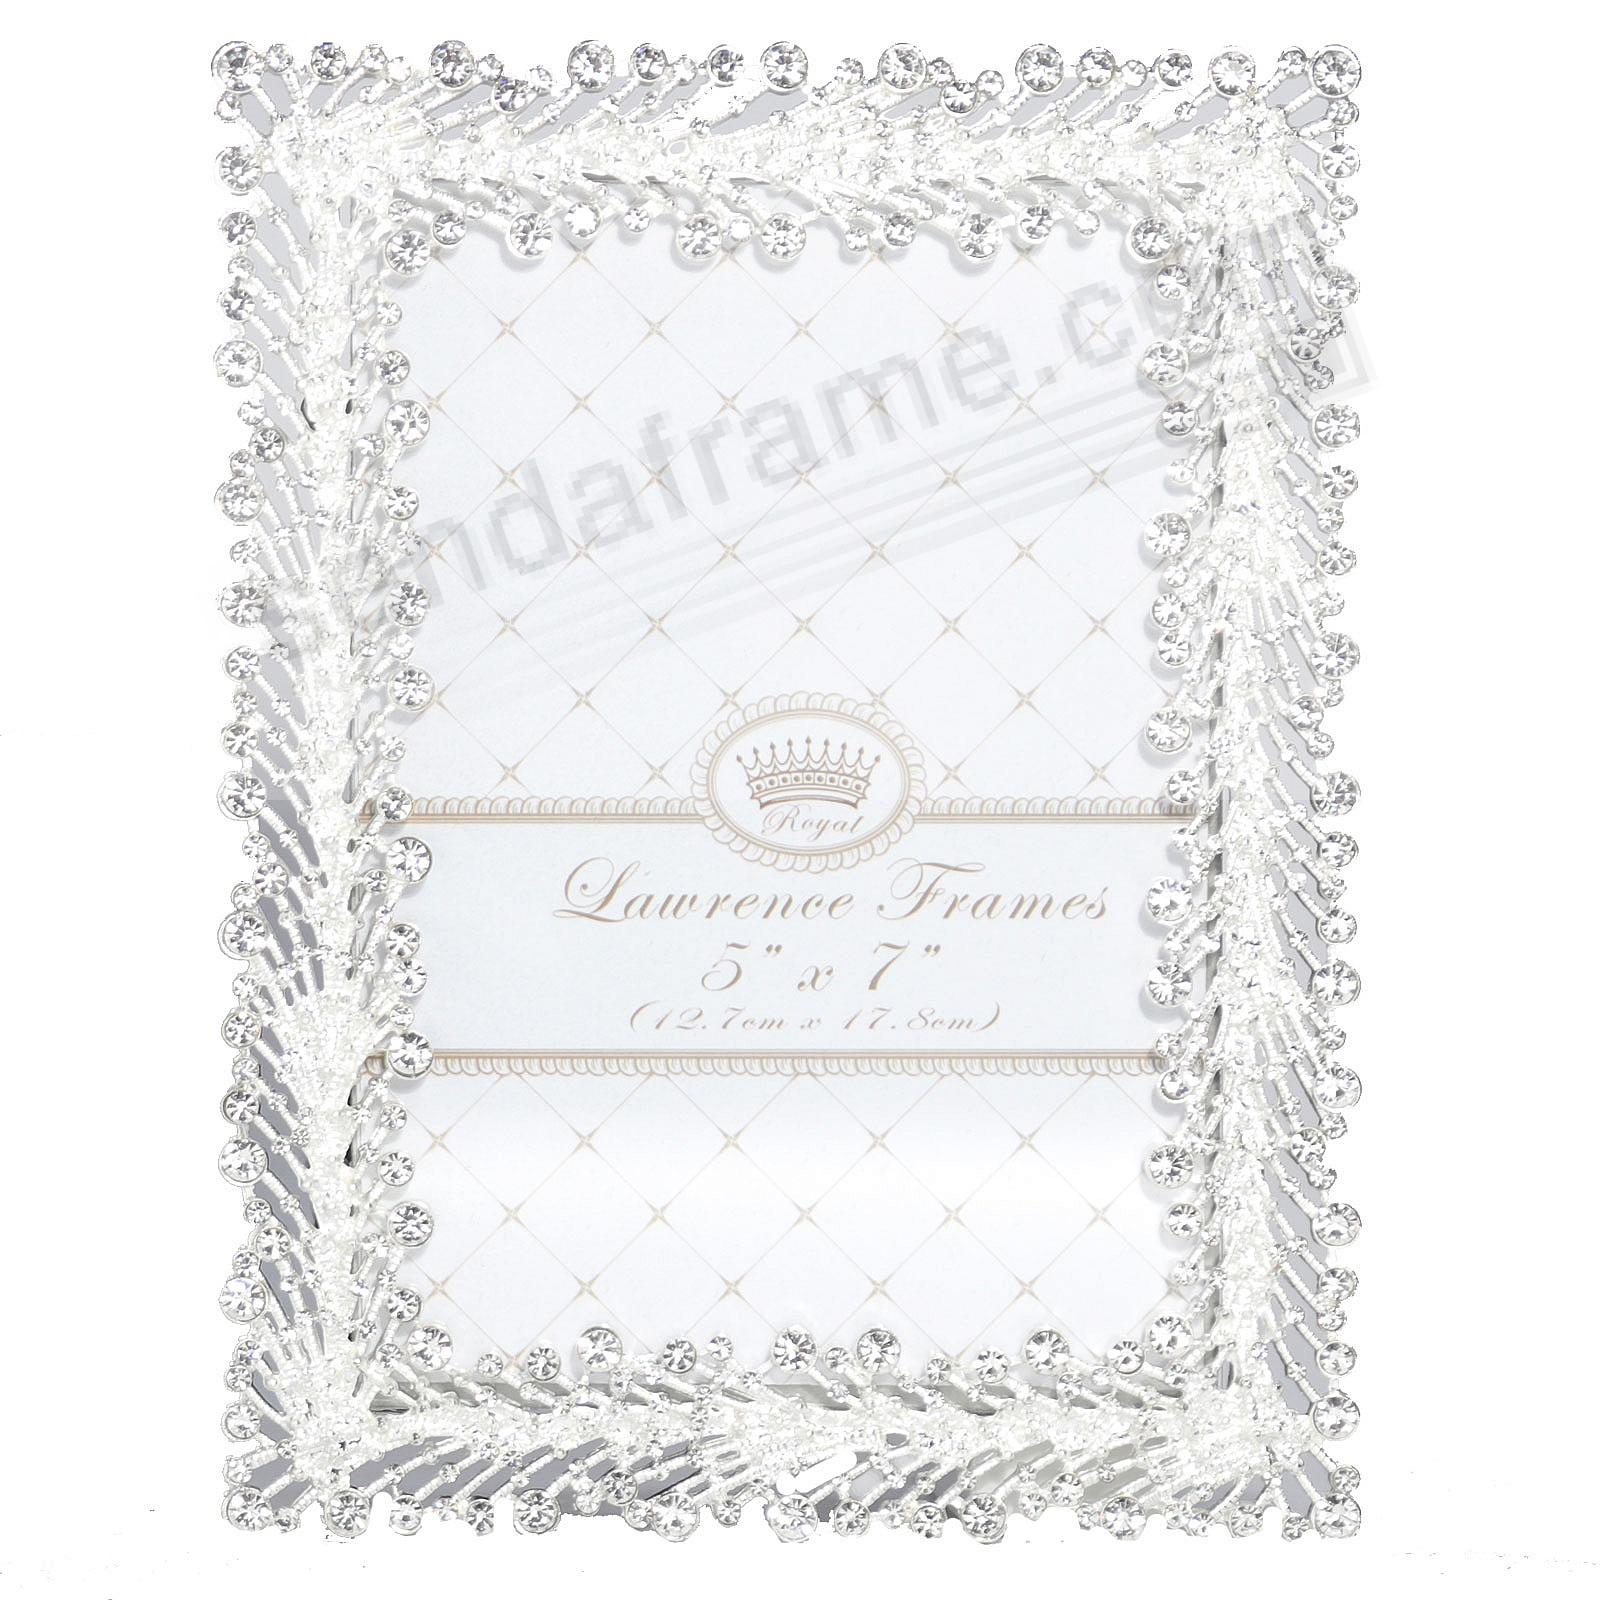 SPRAY WHITE CRYSTAL JEWELS + SILVER 5x7 frame